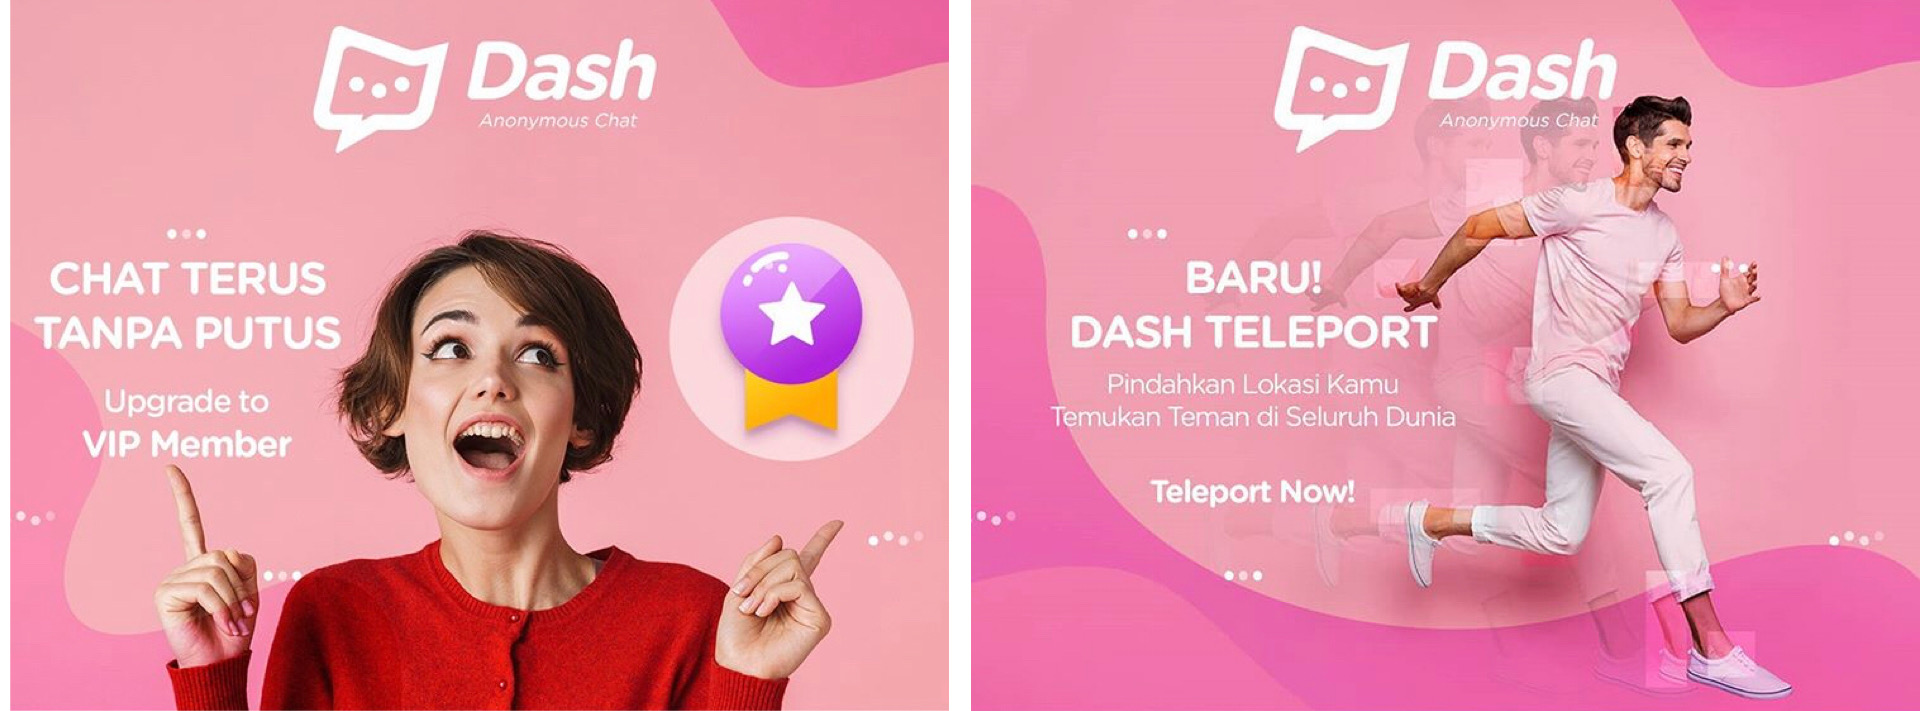 Review Aplikasi Dash Chat